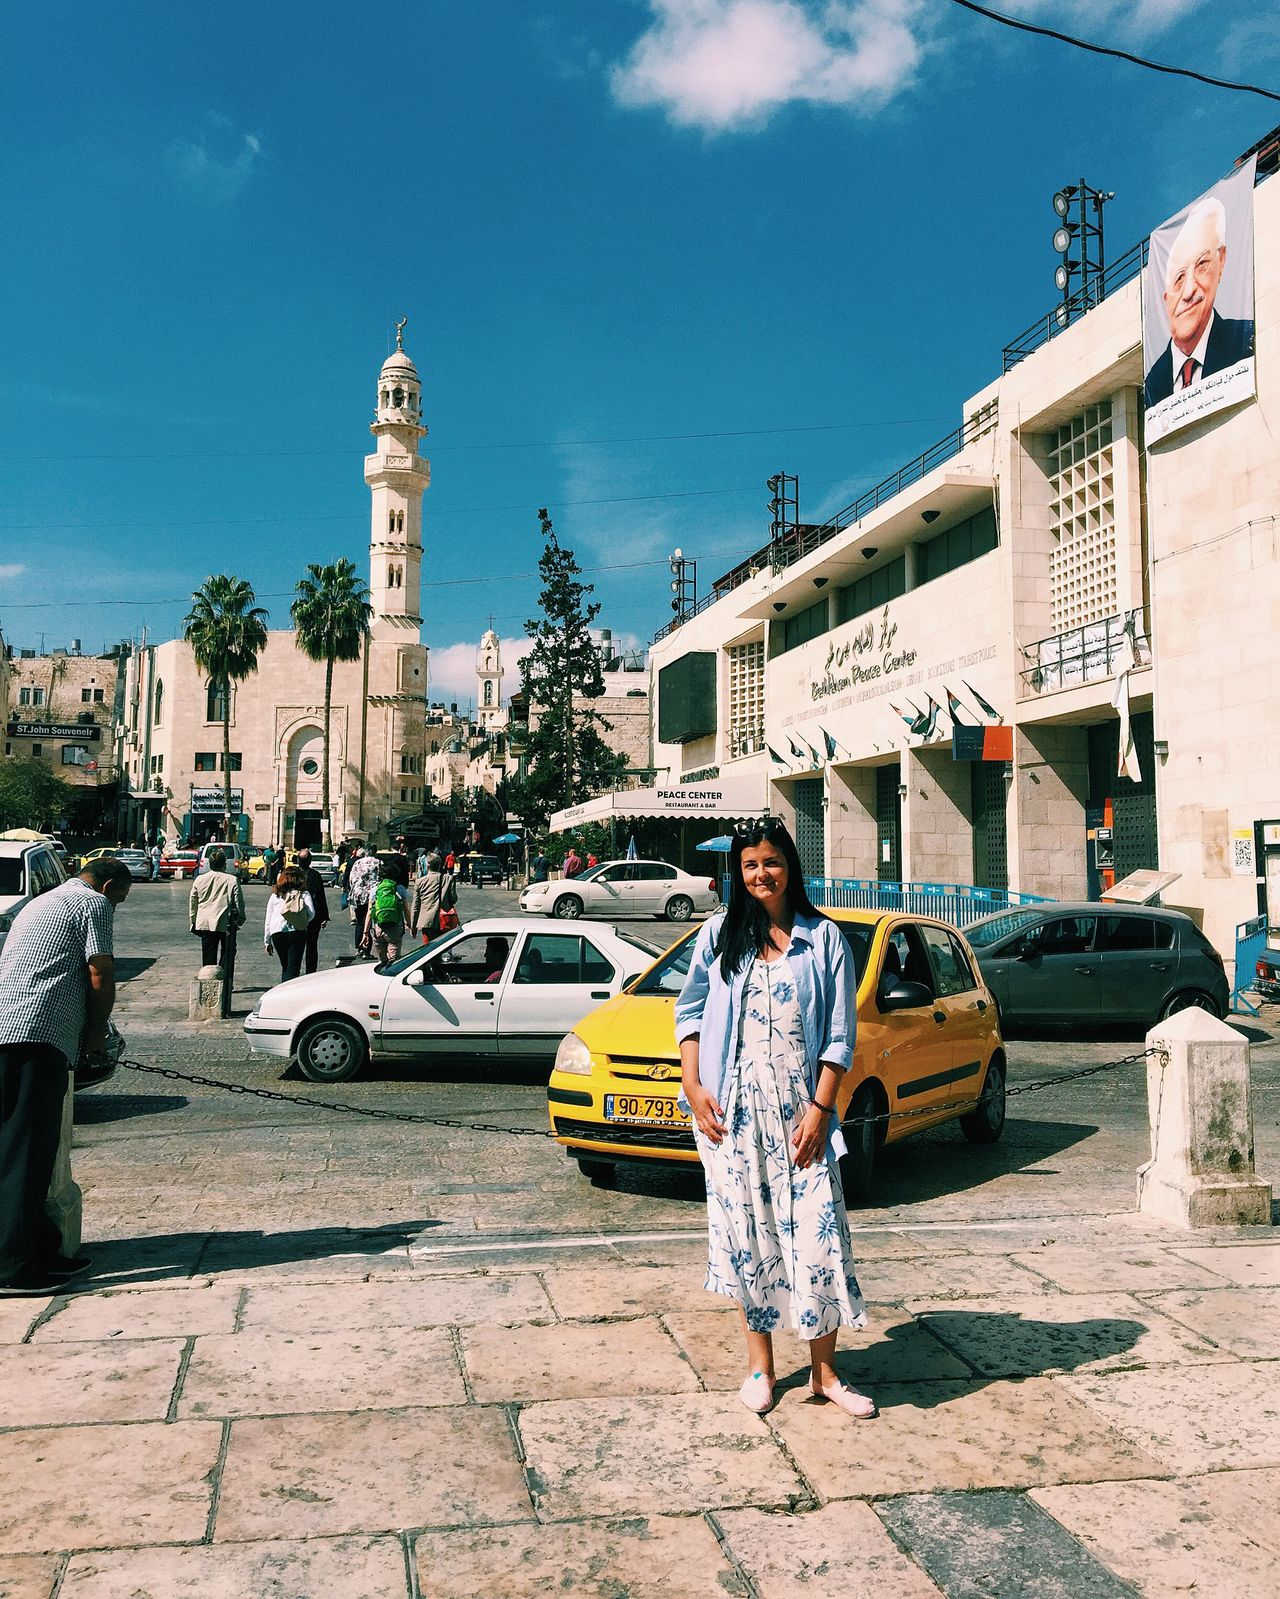 A tourist standing on the square in Bethleem, Palestine Arab Arabic Beautiful Bethlehem Cars Flag History Holy City Palestine Place Square Street Taxi Tourist